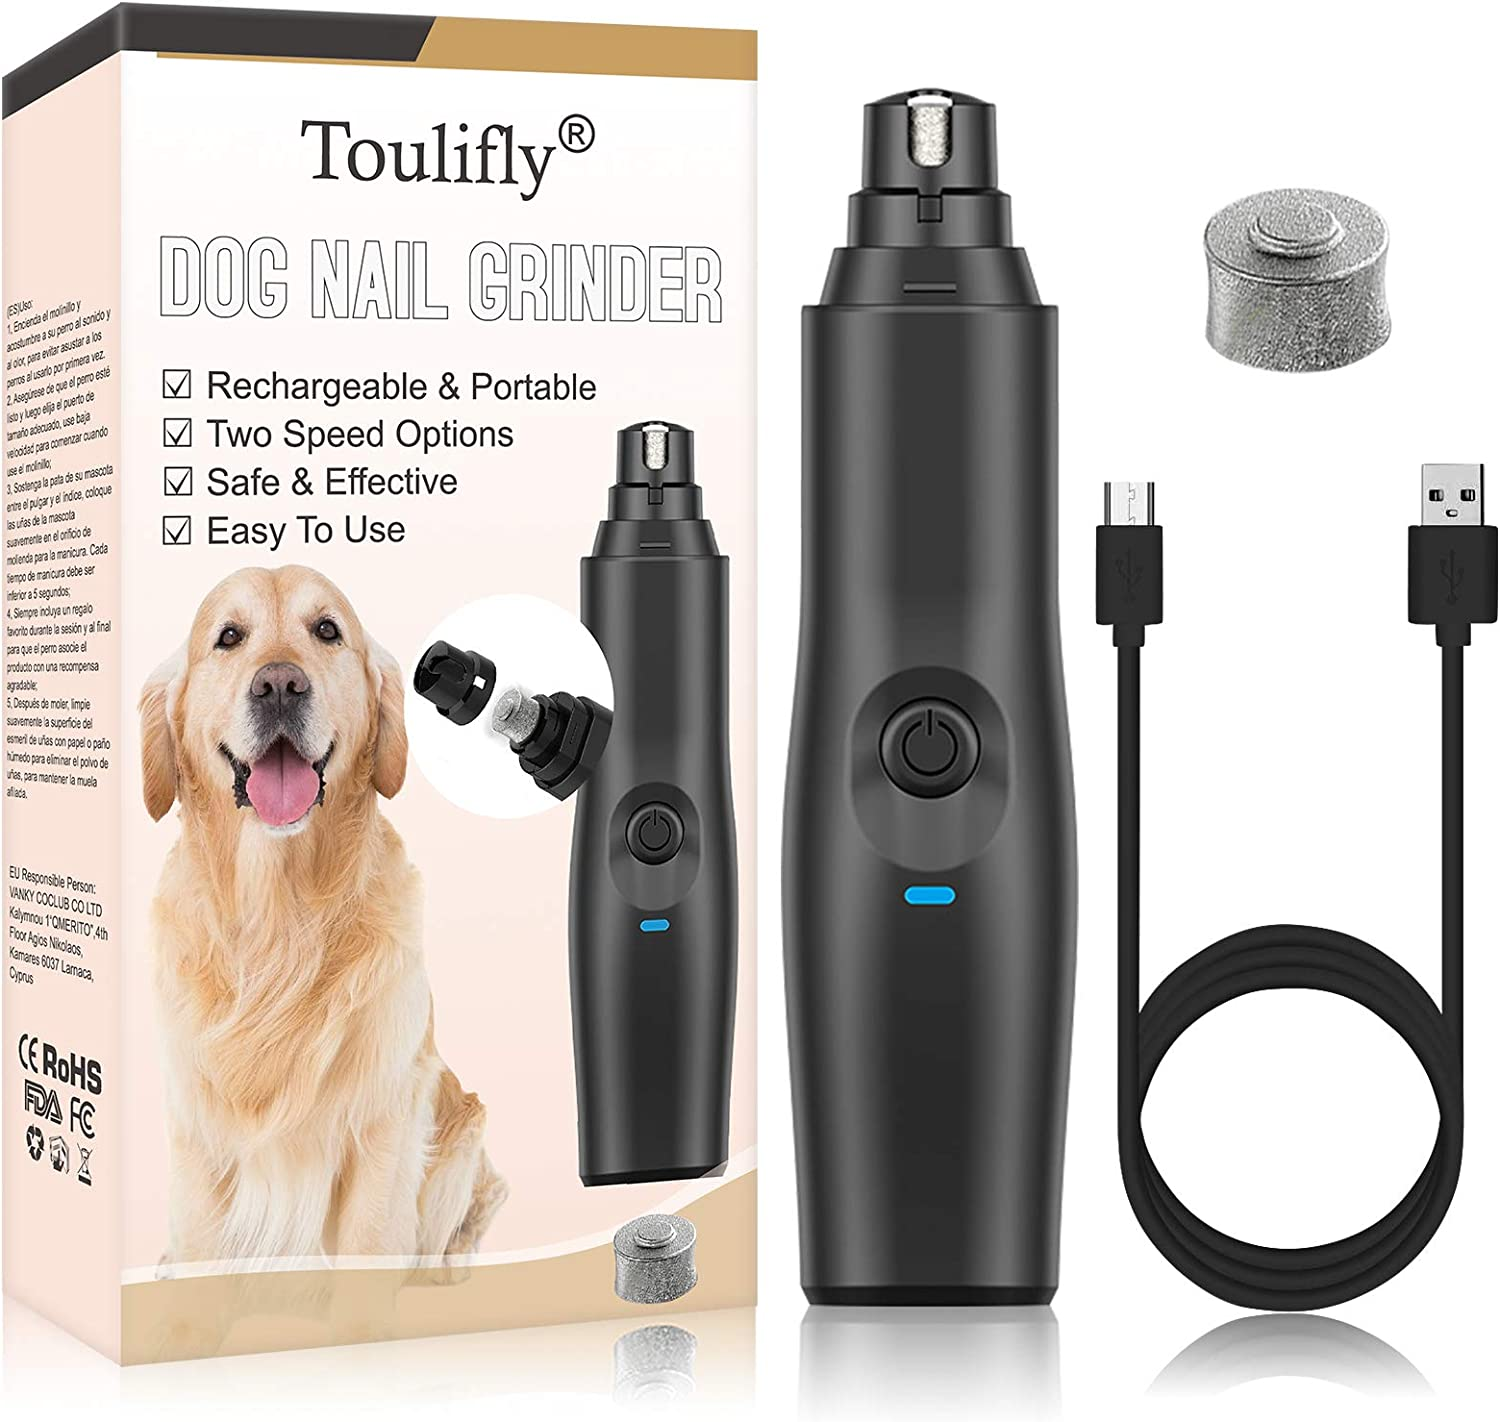 TOULIFLY Dog Nail Grinder, Pet Nail Grinder, Electric Pet Nail Grinder Gentle, Adjustable Power 2 Speed Quiet USB Rechargeable Professional Pet Nail Trimmer Paws Grooming & Smoothing Claw Care